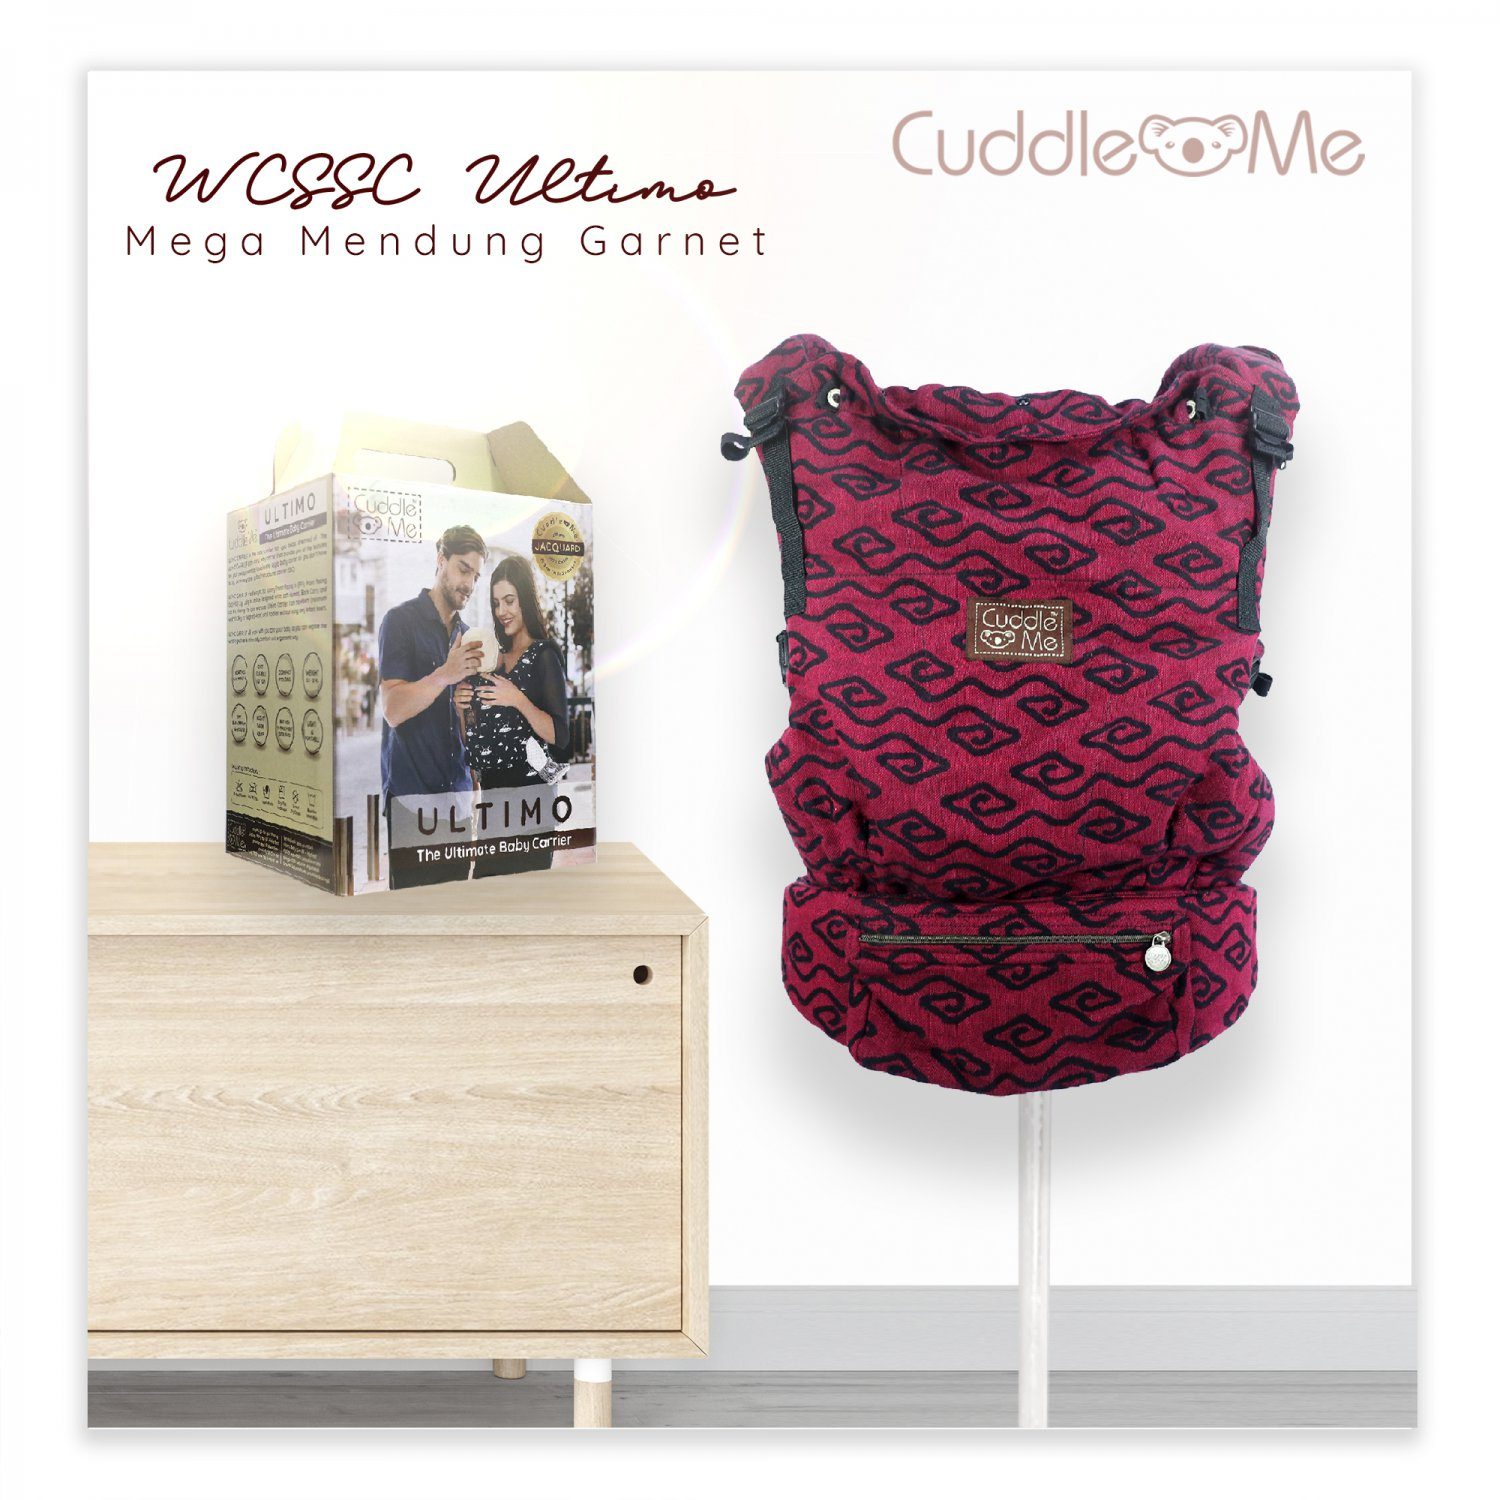 WCSSC Jacquard Ultimo Carrier Cuddle Me   WOVEN Wrap convert to SSC   NB to toddler   Mega Mendung